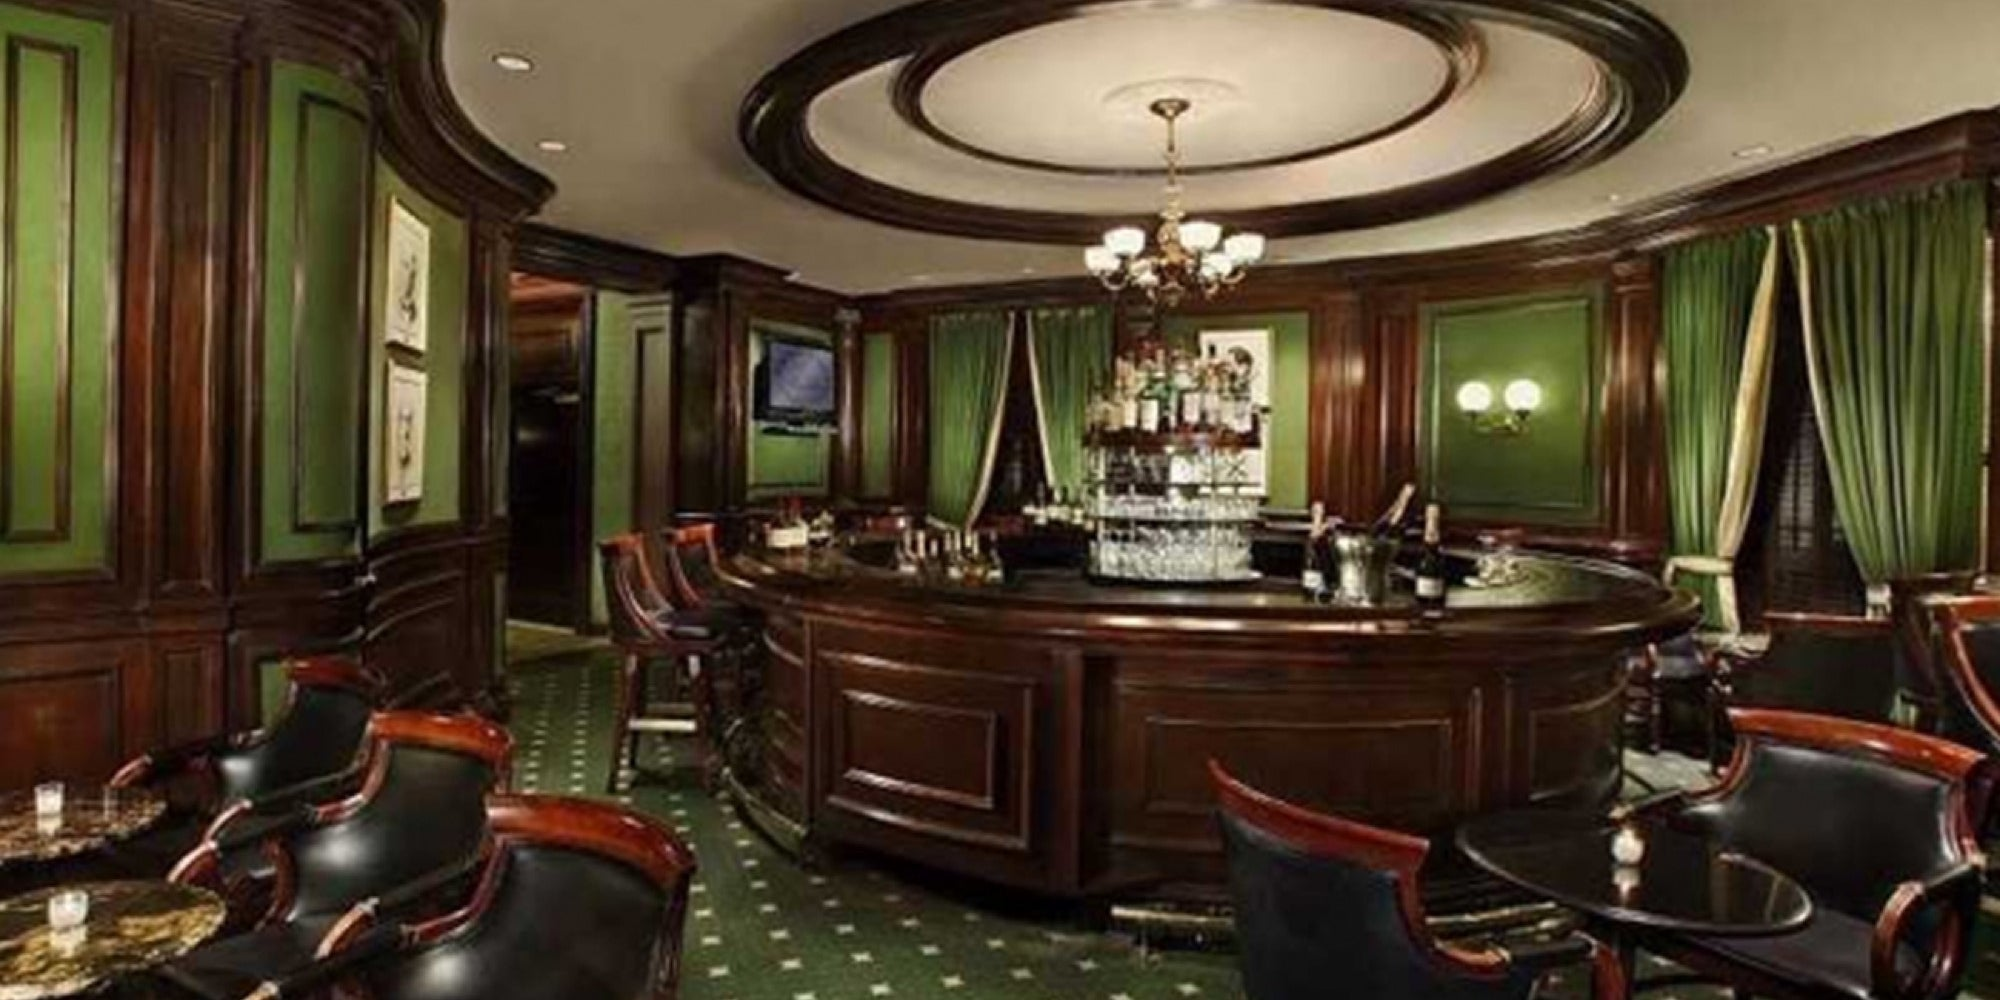 30 Iconic American Hotel Bars Everyone Should Have a Drink At